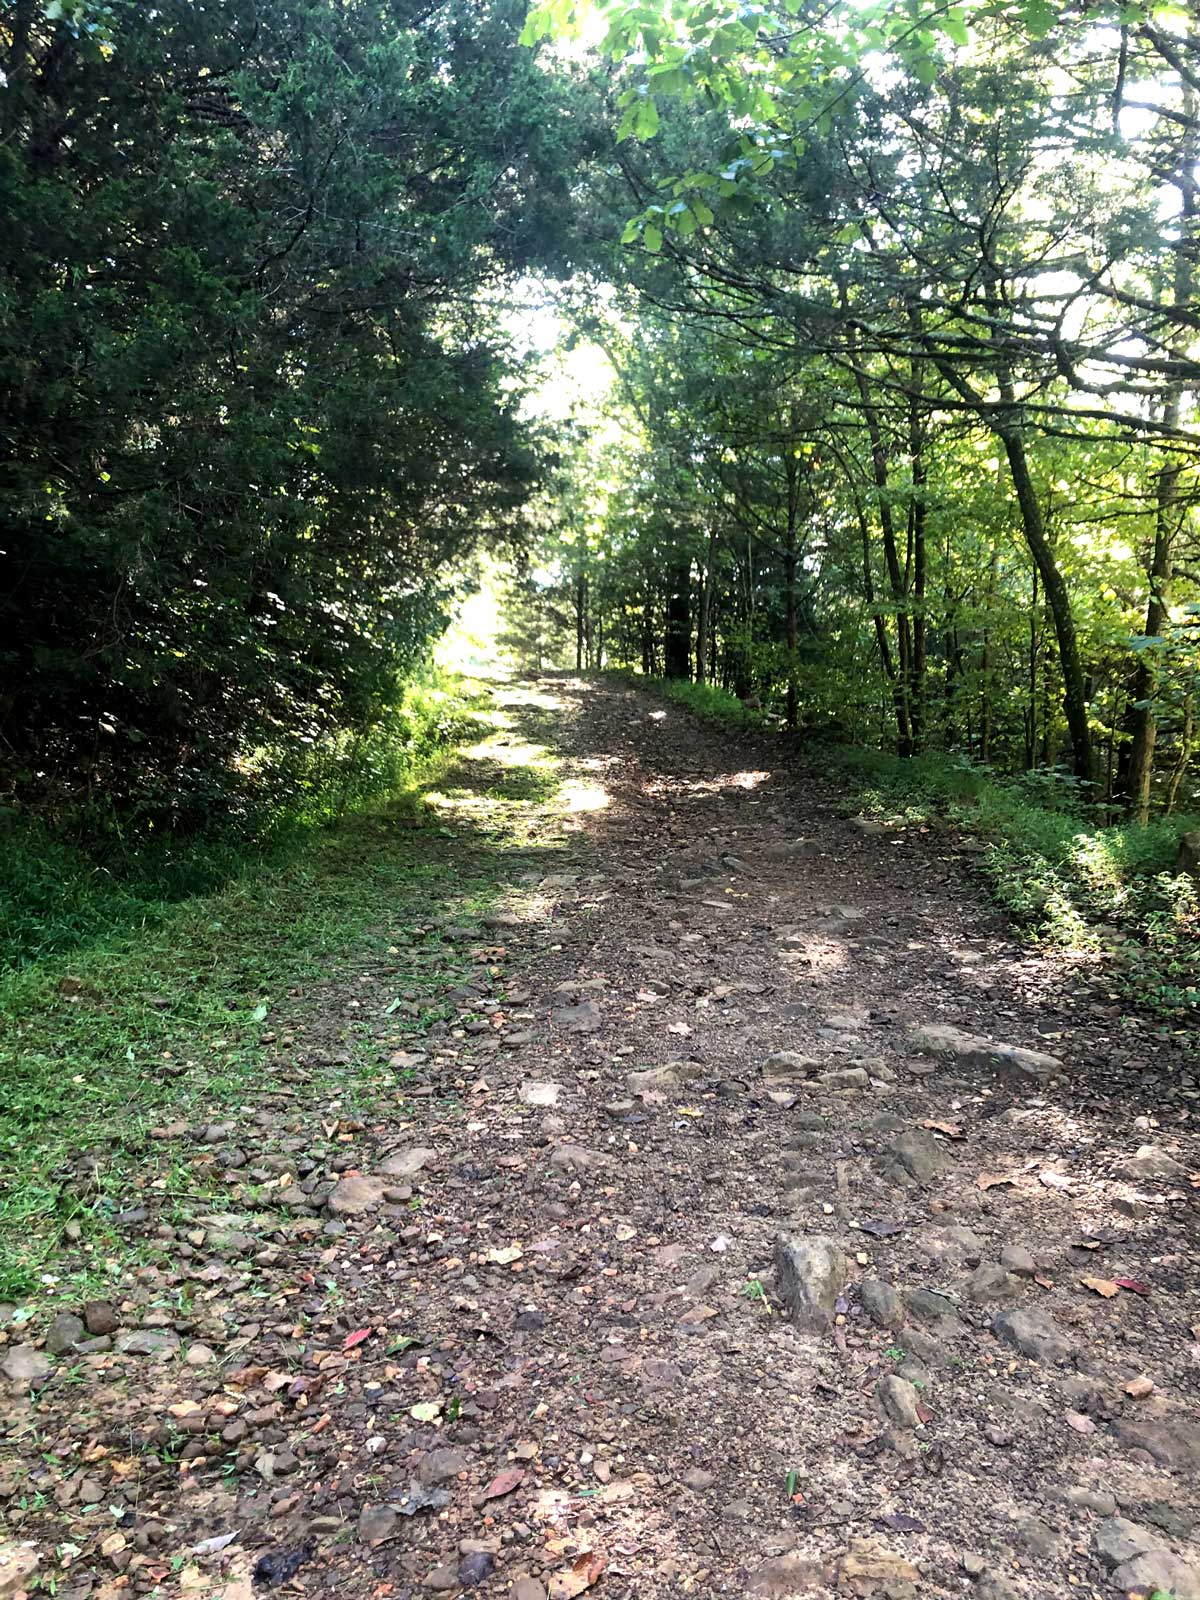 The driveway is an easy location to see and understand encroachment by nature.